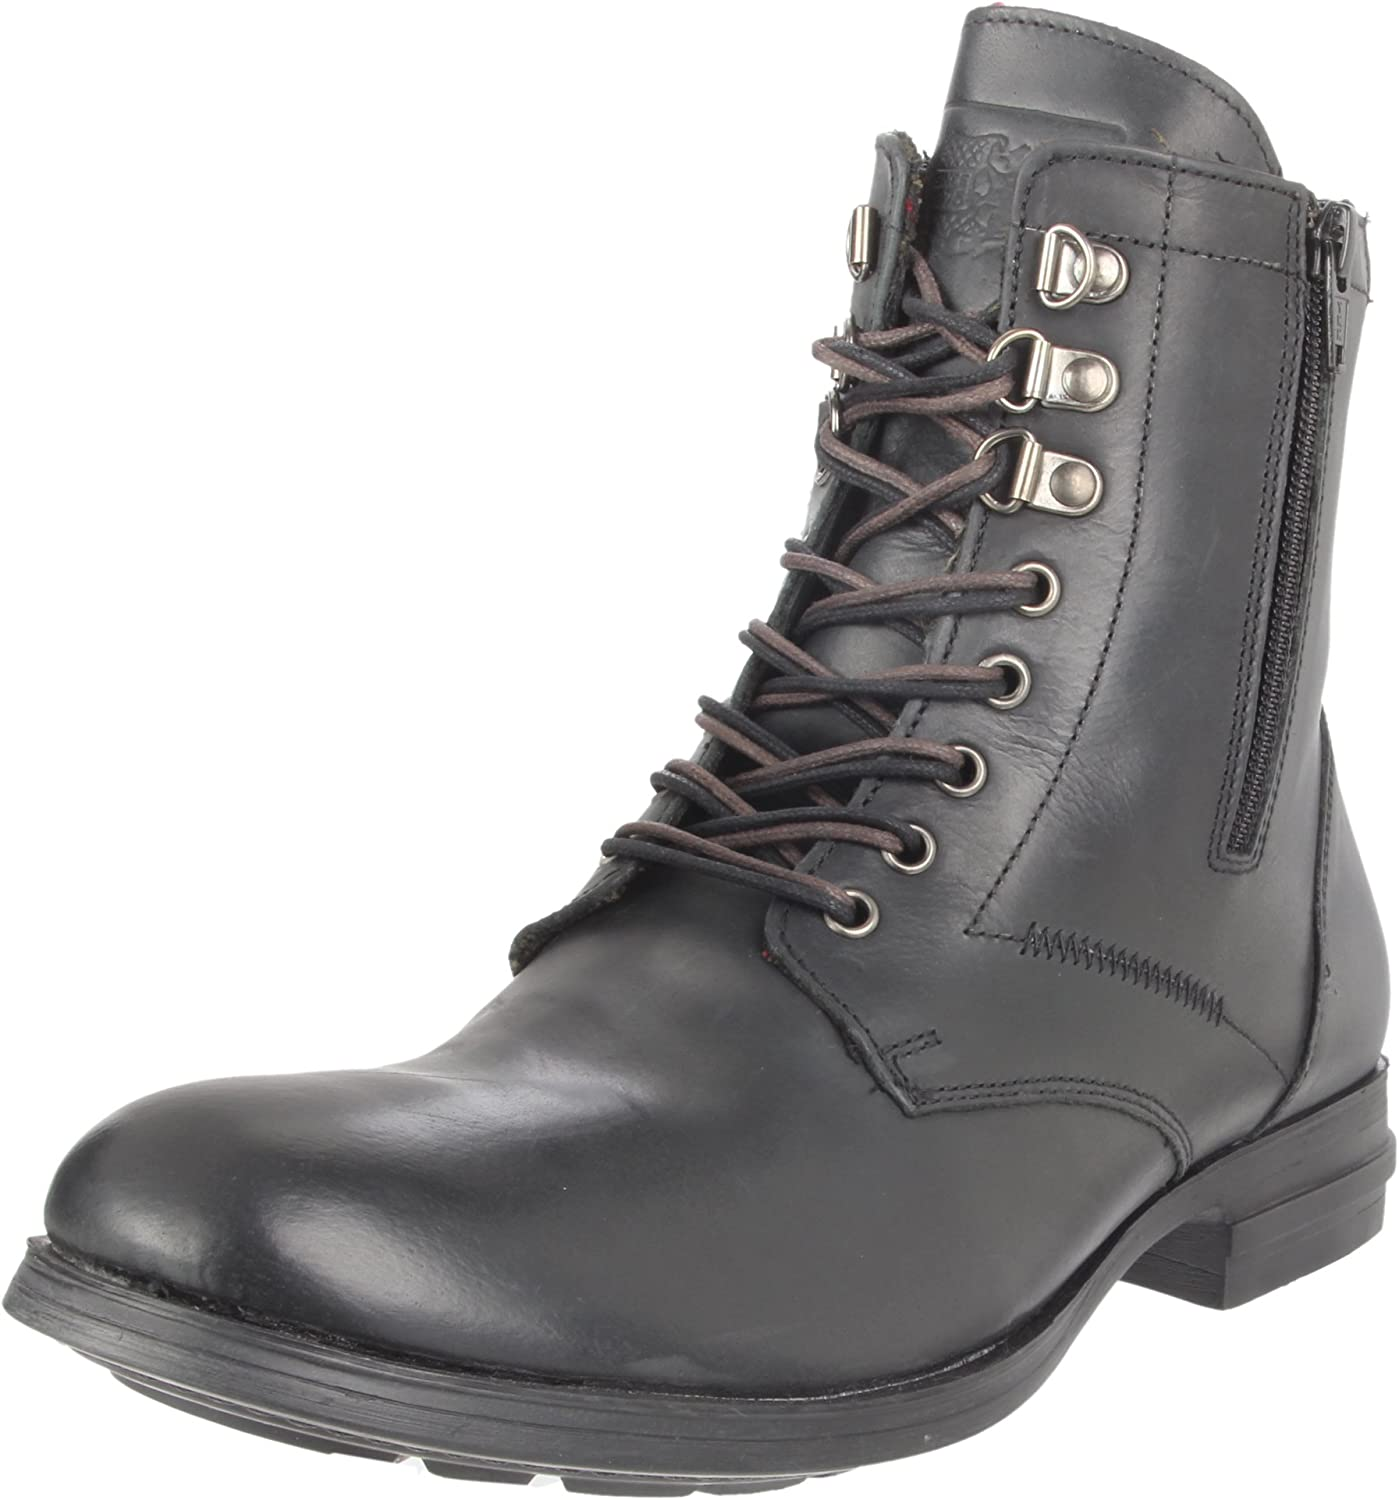 Stacy Adams Men's Alley Lace Up Boots